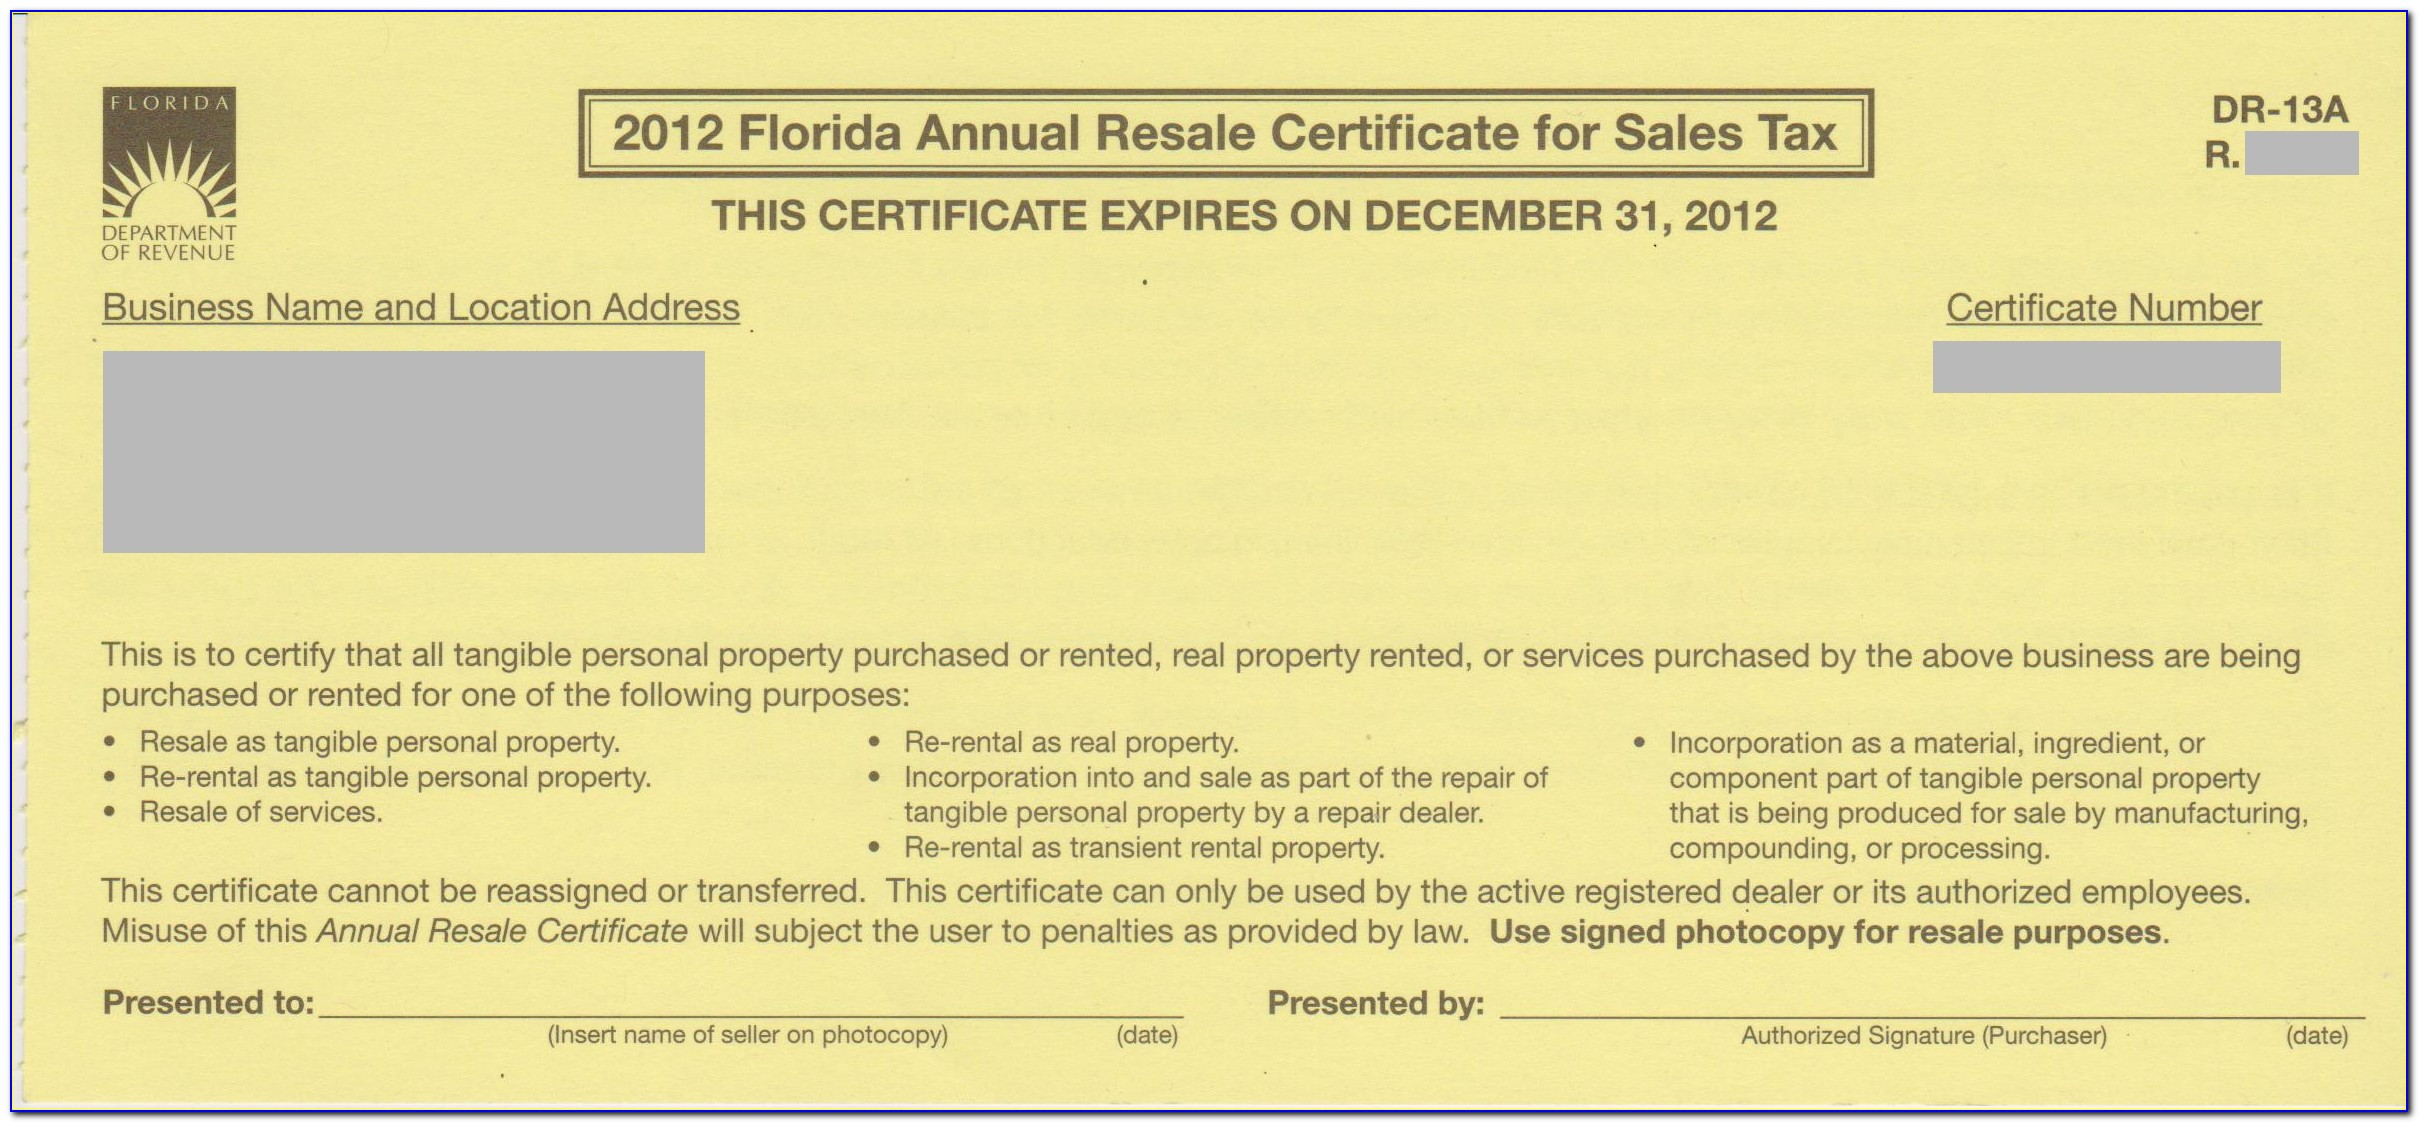 Florida Annual Resale Certificate Form Dr 13